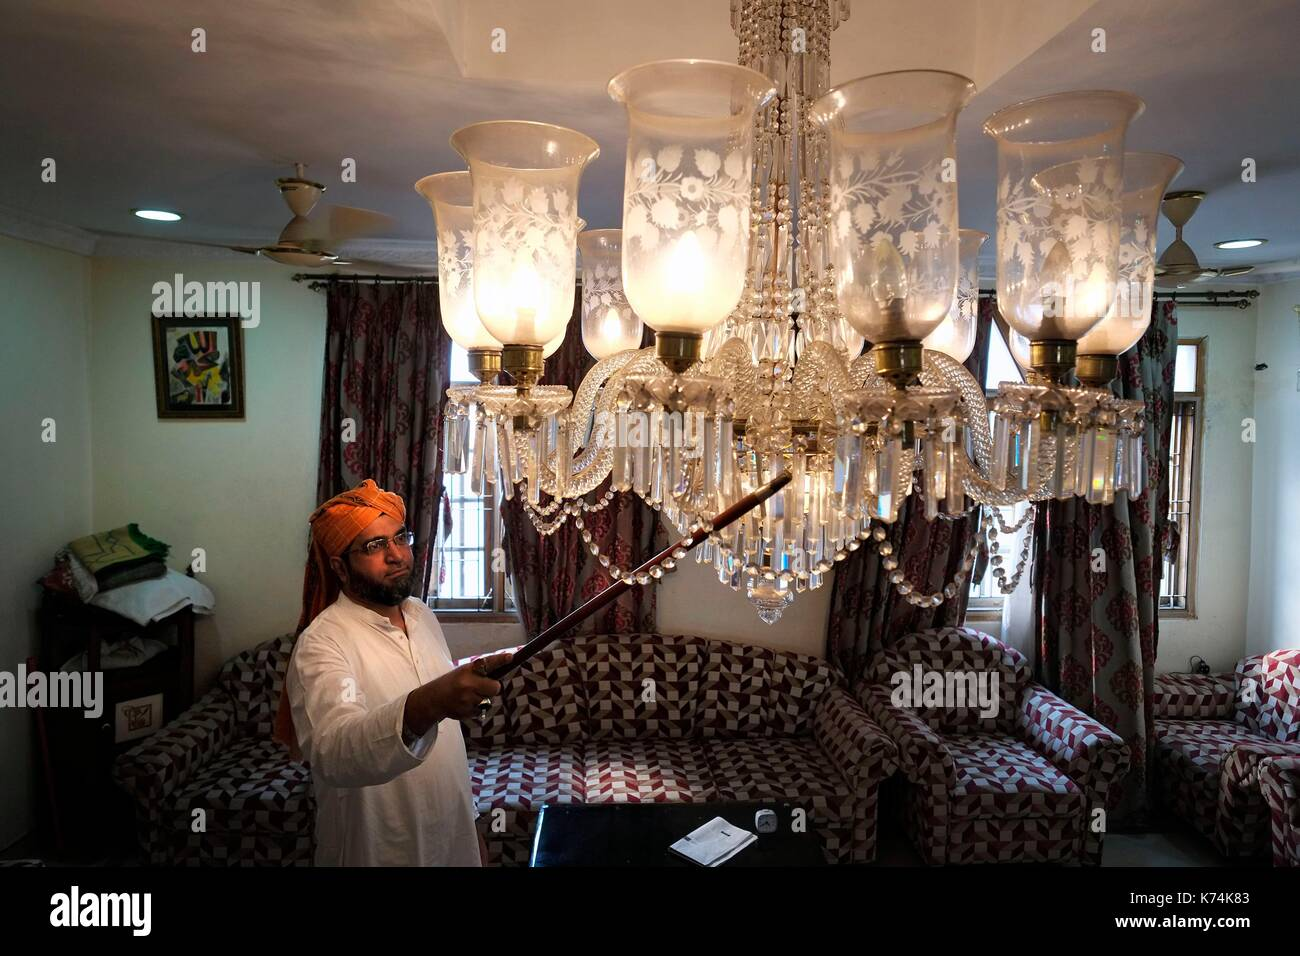 India telangana hyderabad at moudjis house filled with belgian india telangana hyderabad at moudjis house filled with belgian chandeliers in the aloadofball Gallery